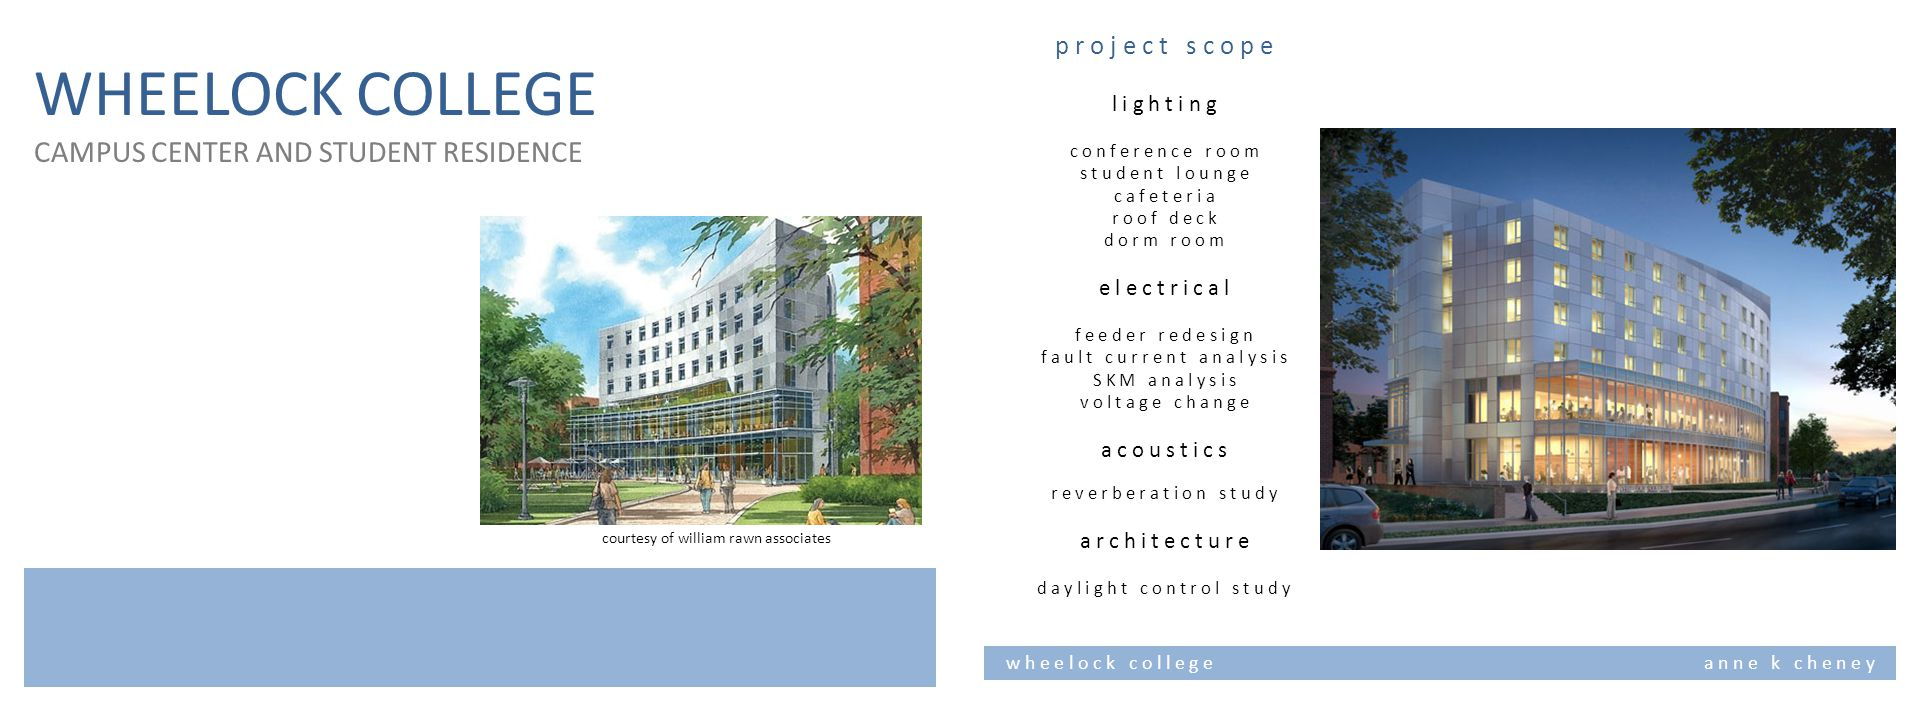 WHEELOCK COLLEGE CAMPUS CENTER AND STUDENT RESIDENCE courtesy of william rawn associates w h e e l o c k c o l l e g e a n n e k c h e n e y p r o j e c t s c o p e l i g h t i n g c o n f e r e n c e r o o m s t u d e n t l o u n g e c a f e t e r i a r o o f d e c k d o r m r o o m e l e c t r i c a l f e e d e r r e d e s i g n f a u l t c u r r e n t a n a l y s i s S K M a n a l y s i s v o l t a g e c h a n g e a c o u s t i c s r e v e r b e r a t i o n s t u d y a r c h i t e c t u r e d a y l i g h t c o n t r o l s t u d y